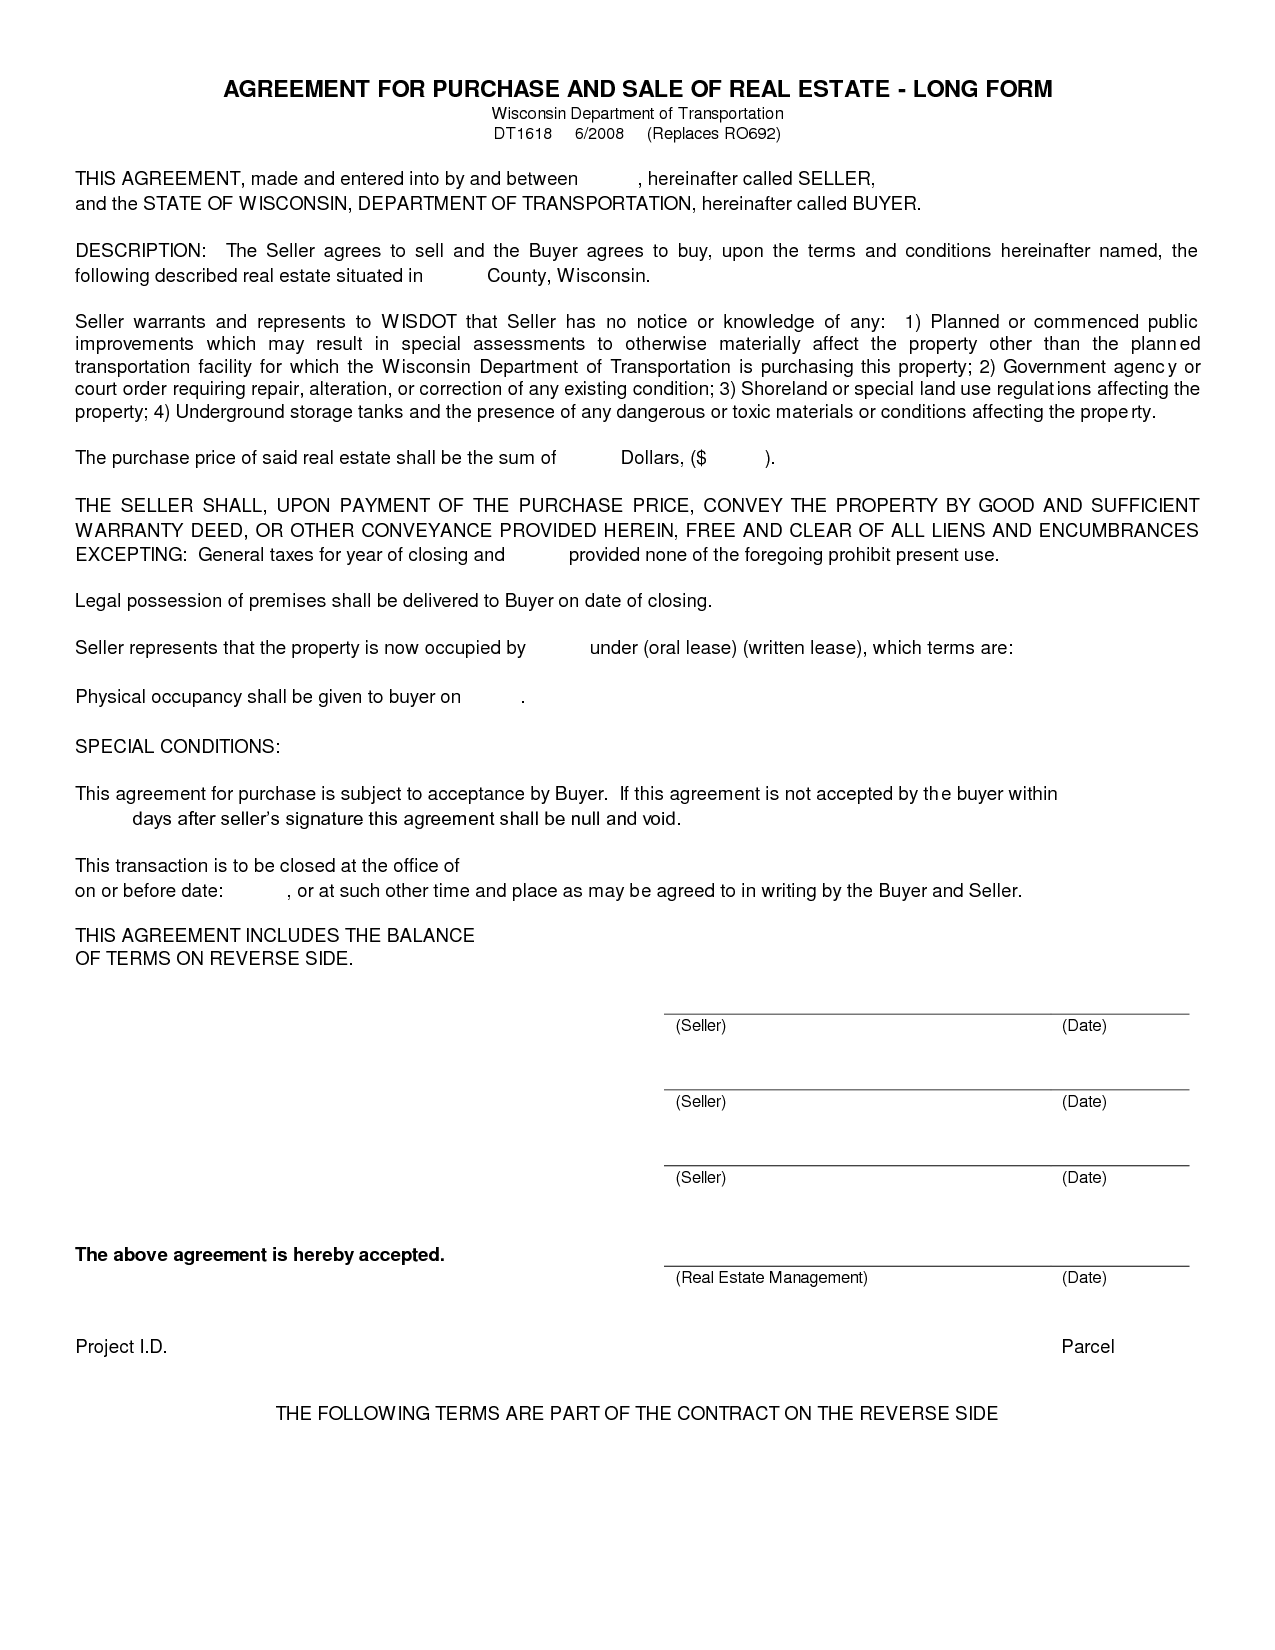 Superior Free Blank Purchase Agreement Form Images   Agreement To Purchase Real  Estate Form Free Regard To Blank Purchase Contract